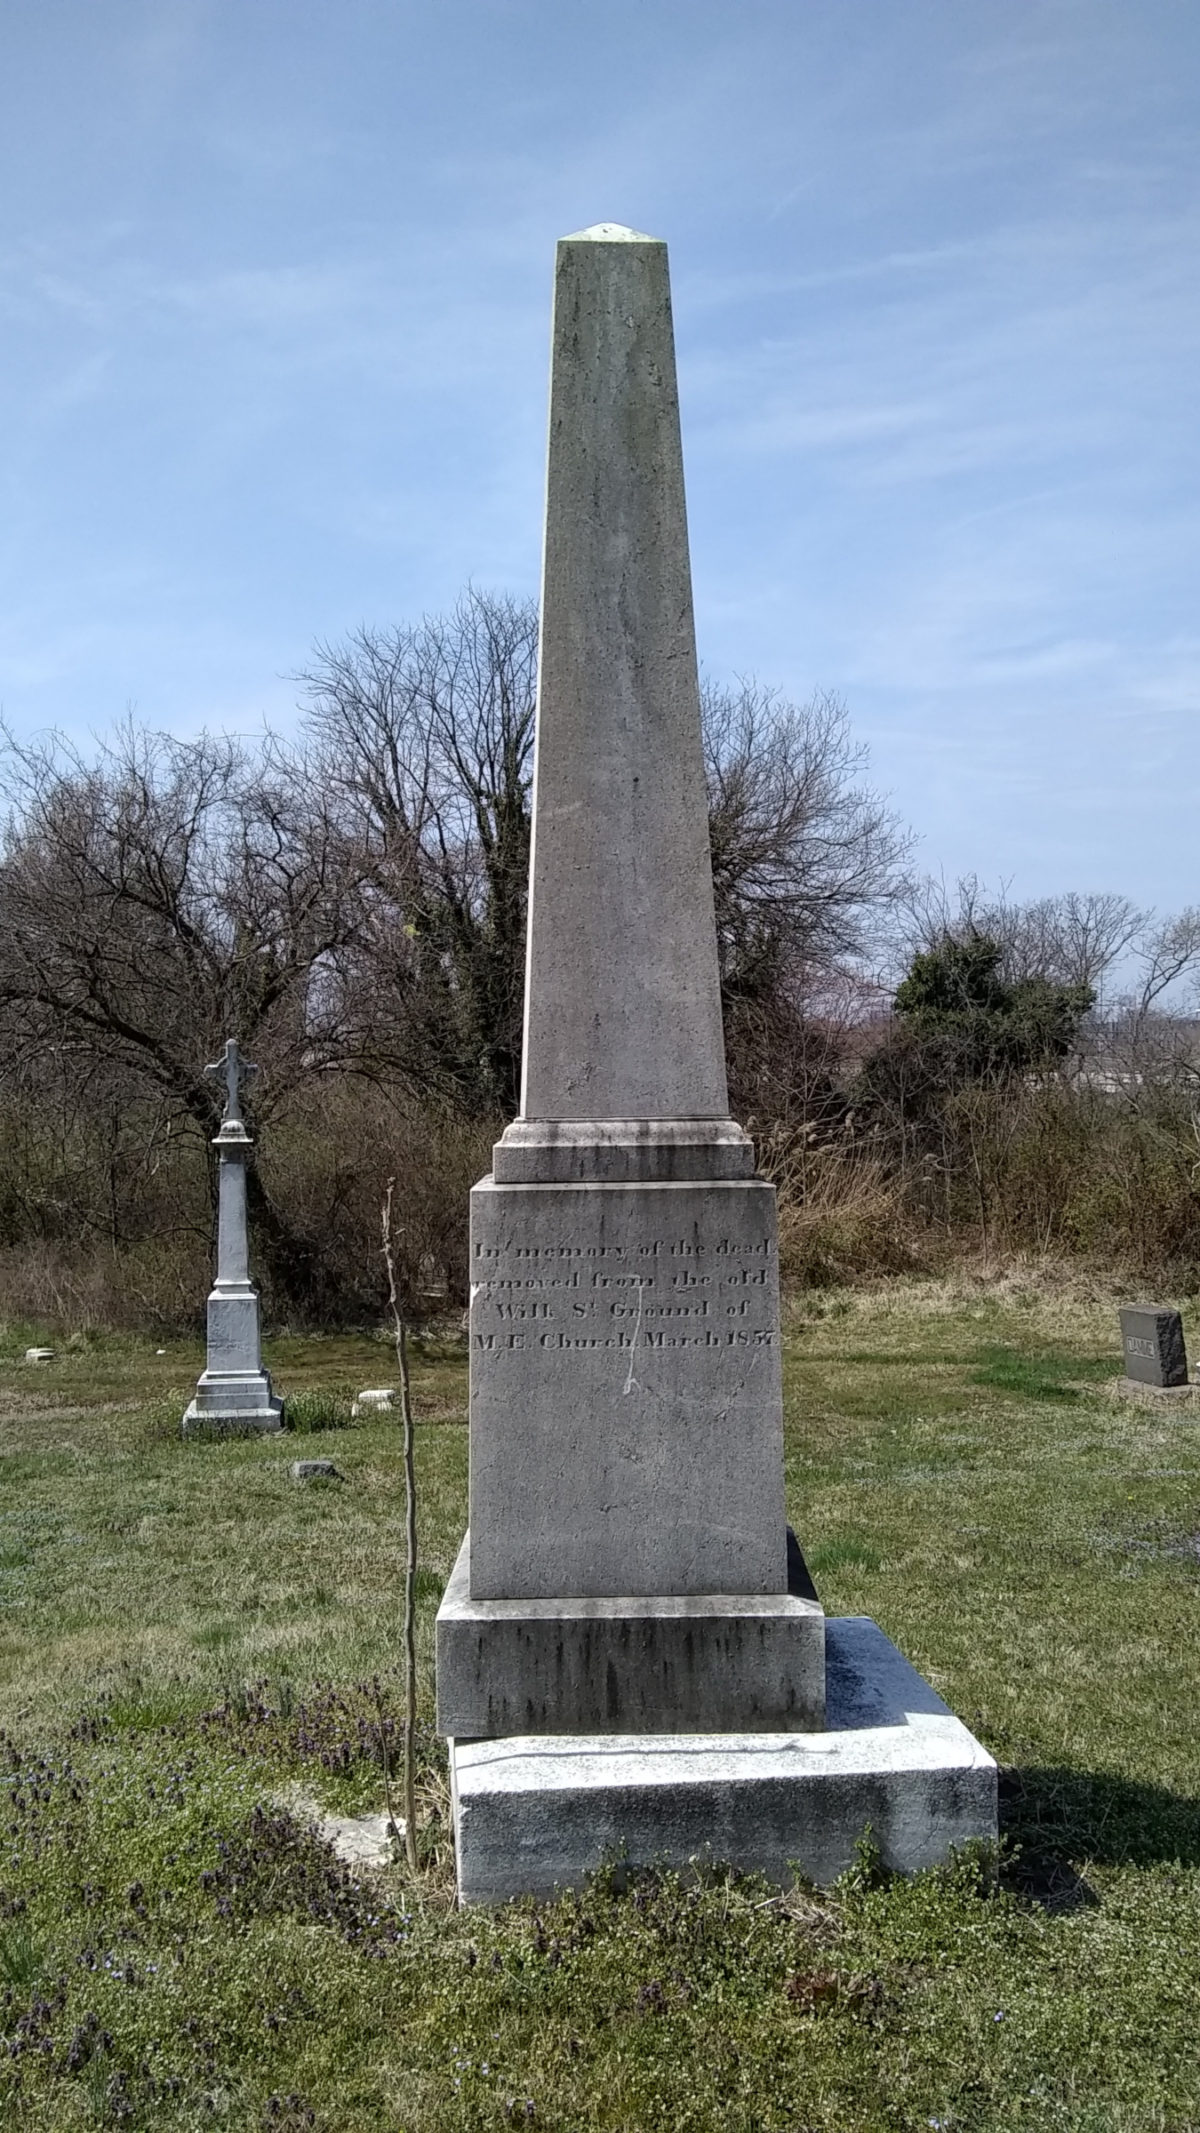 Obelisk monument for bodies relocated from Wilkes Street Methodist Episcopal Church in 1857.